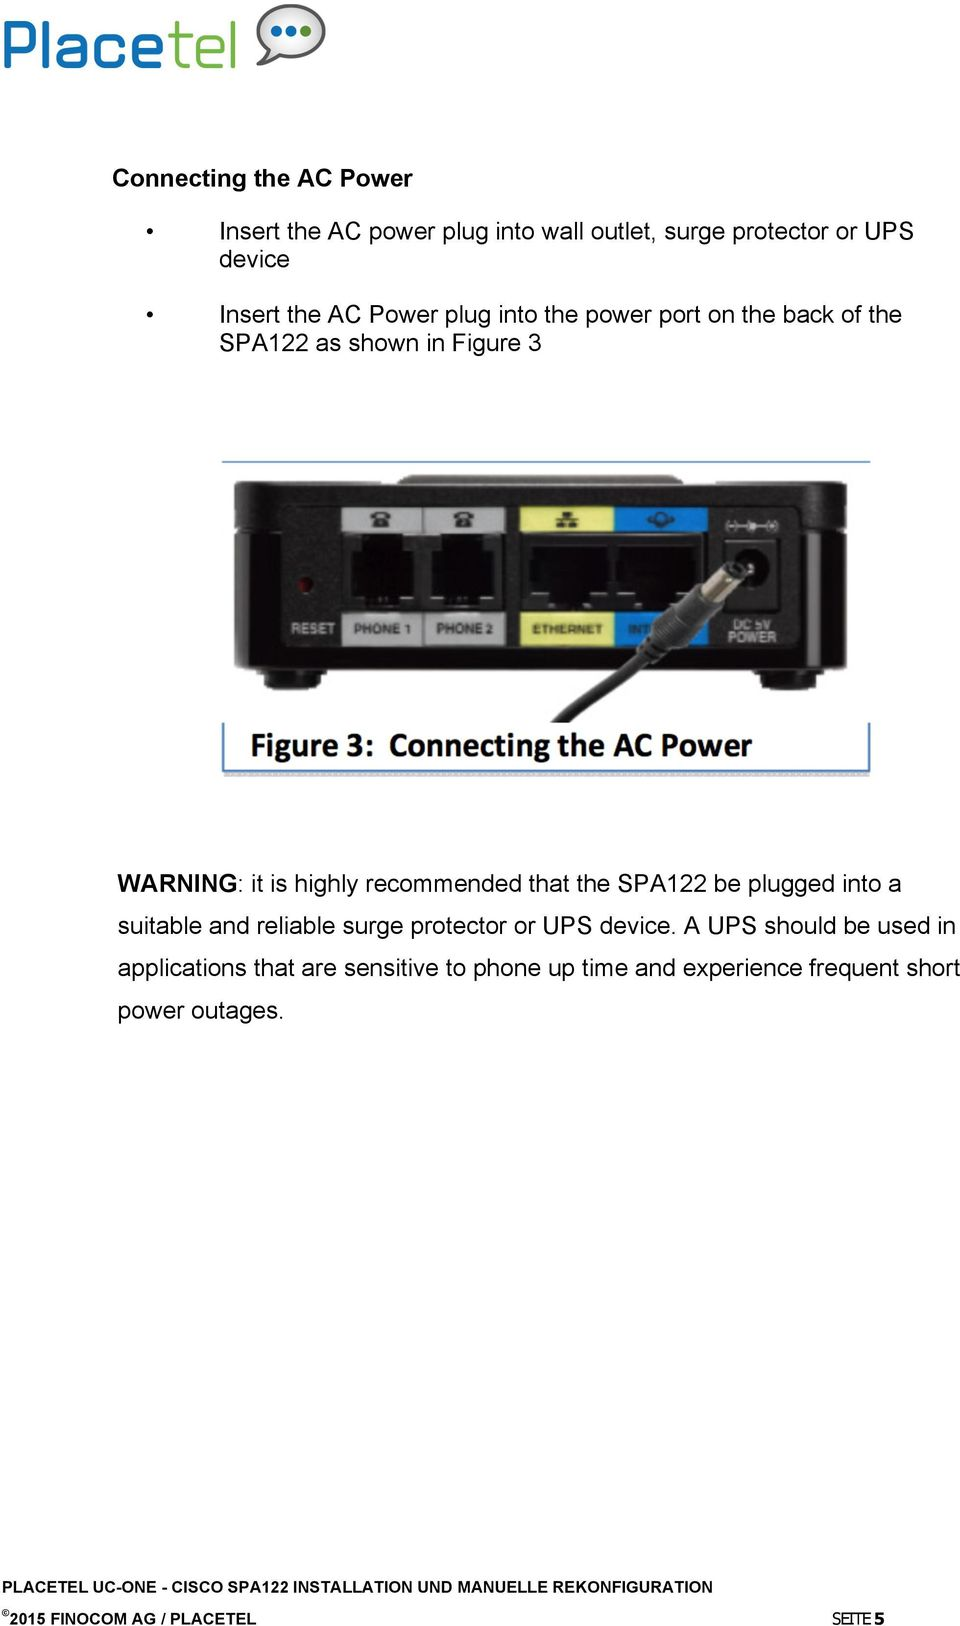 that the SPA122 be plugged into a suitable and reliable surge protector or UPS device.